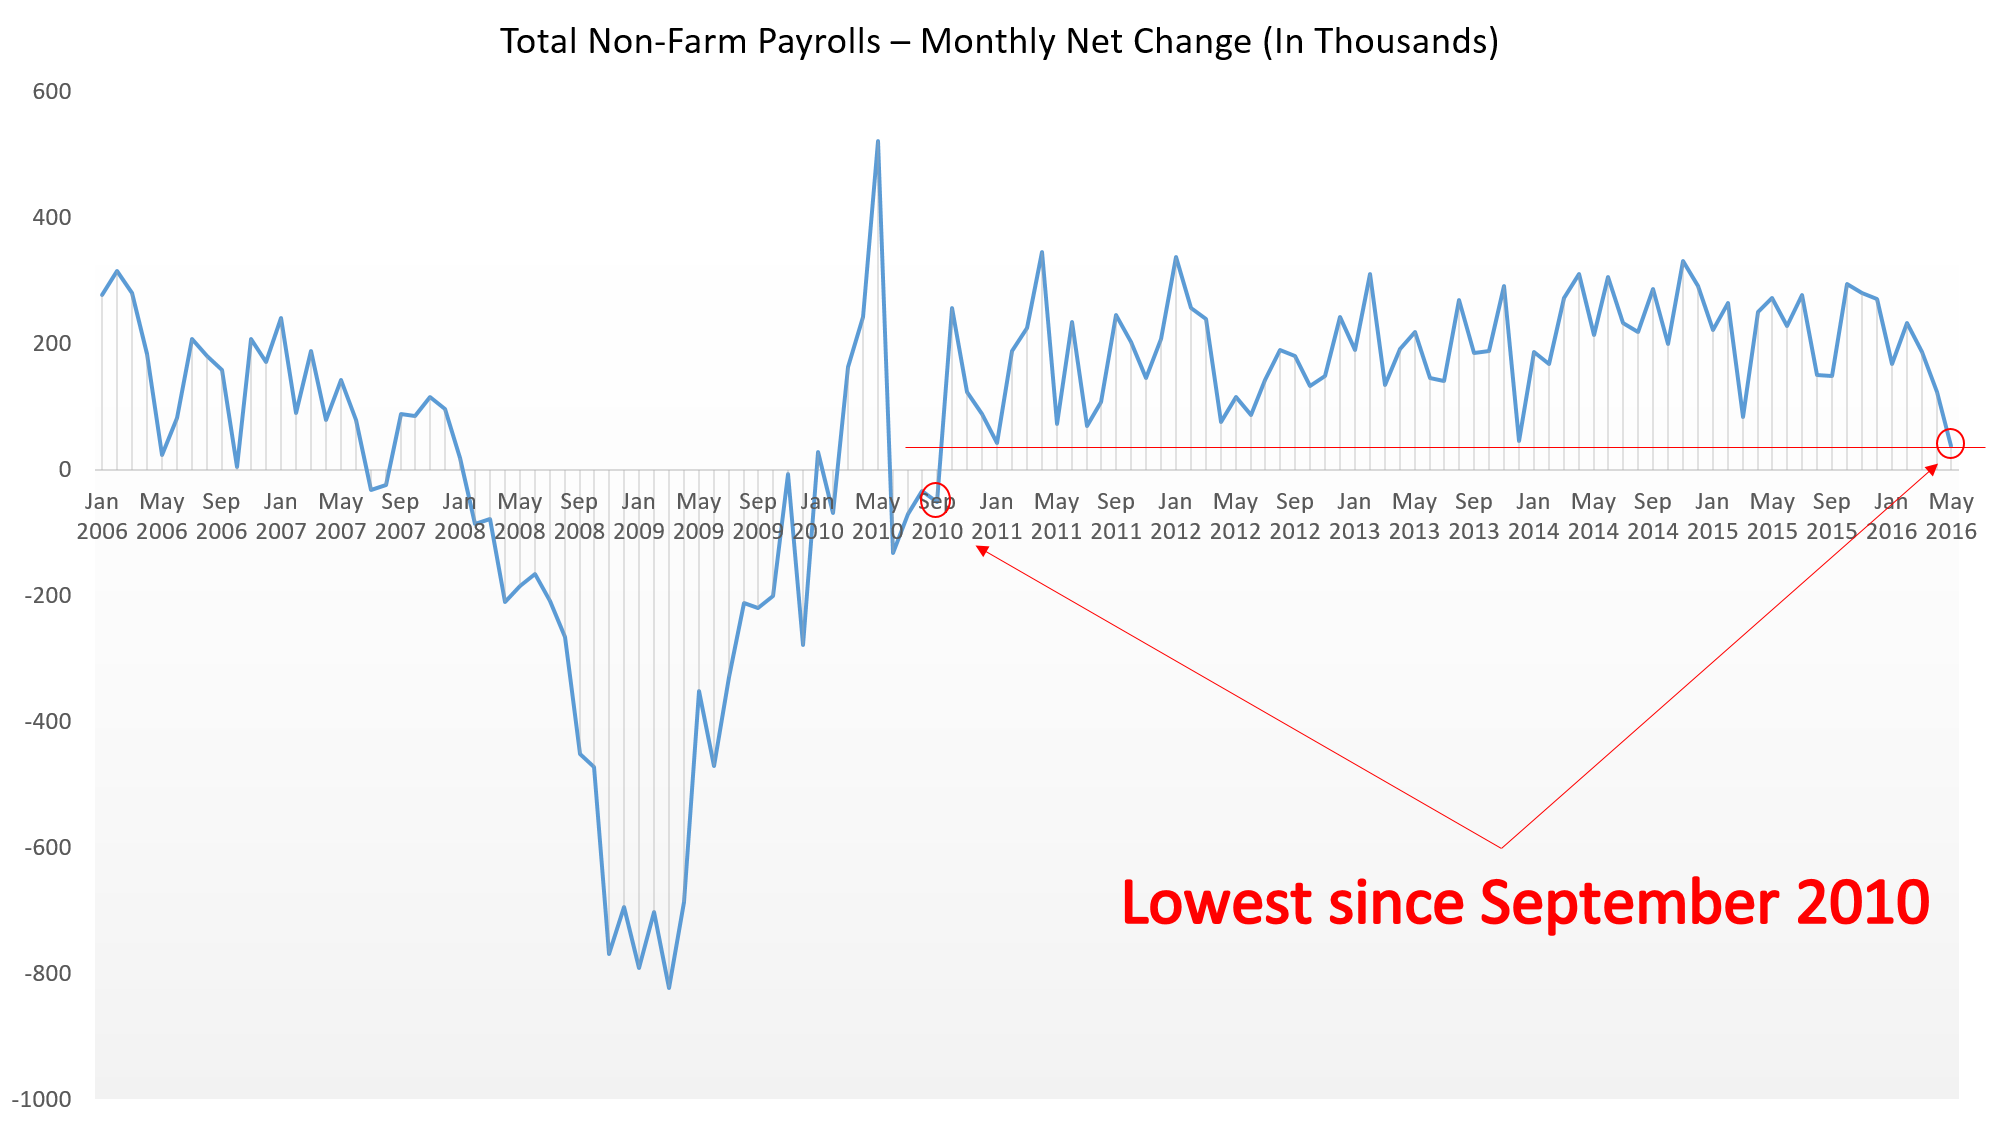 Total Non-Farm Payrolls - Monthly Net Change (In Thousands)